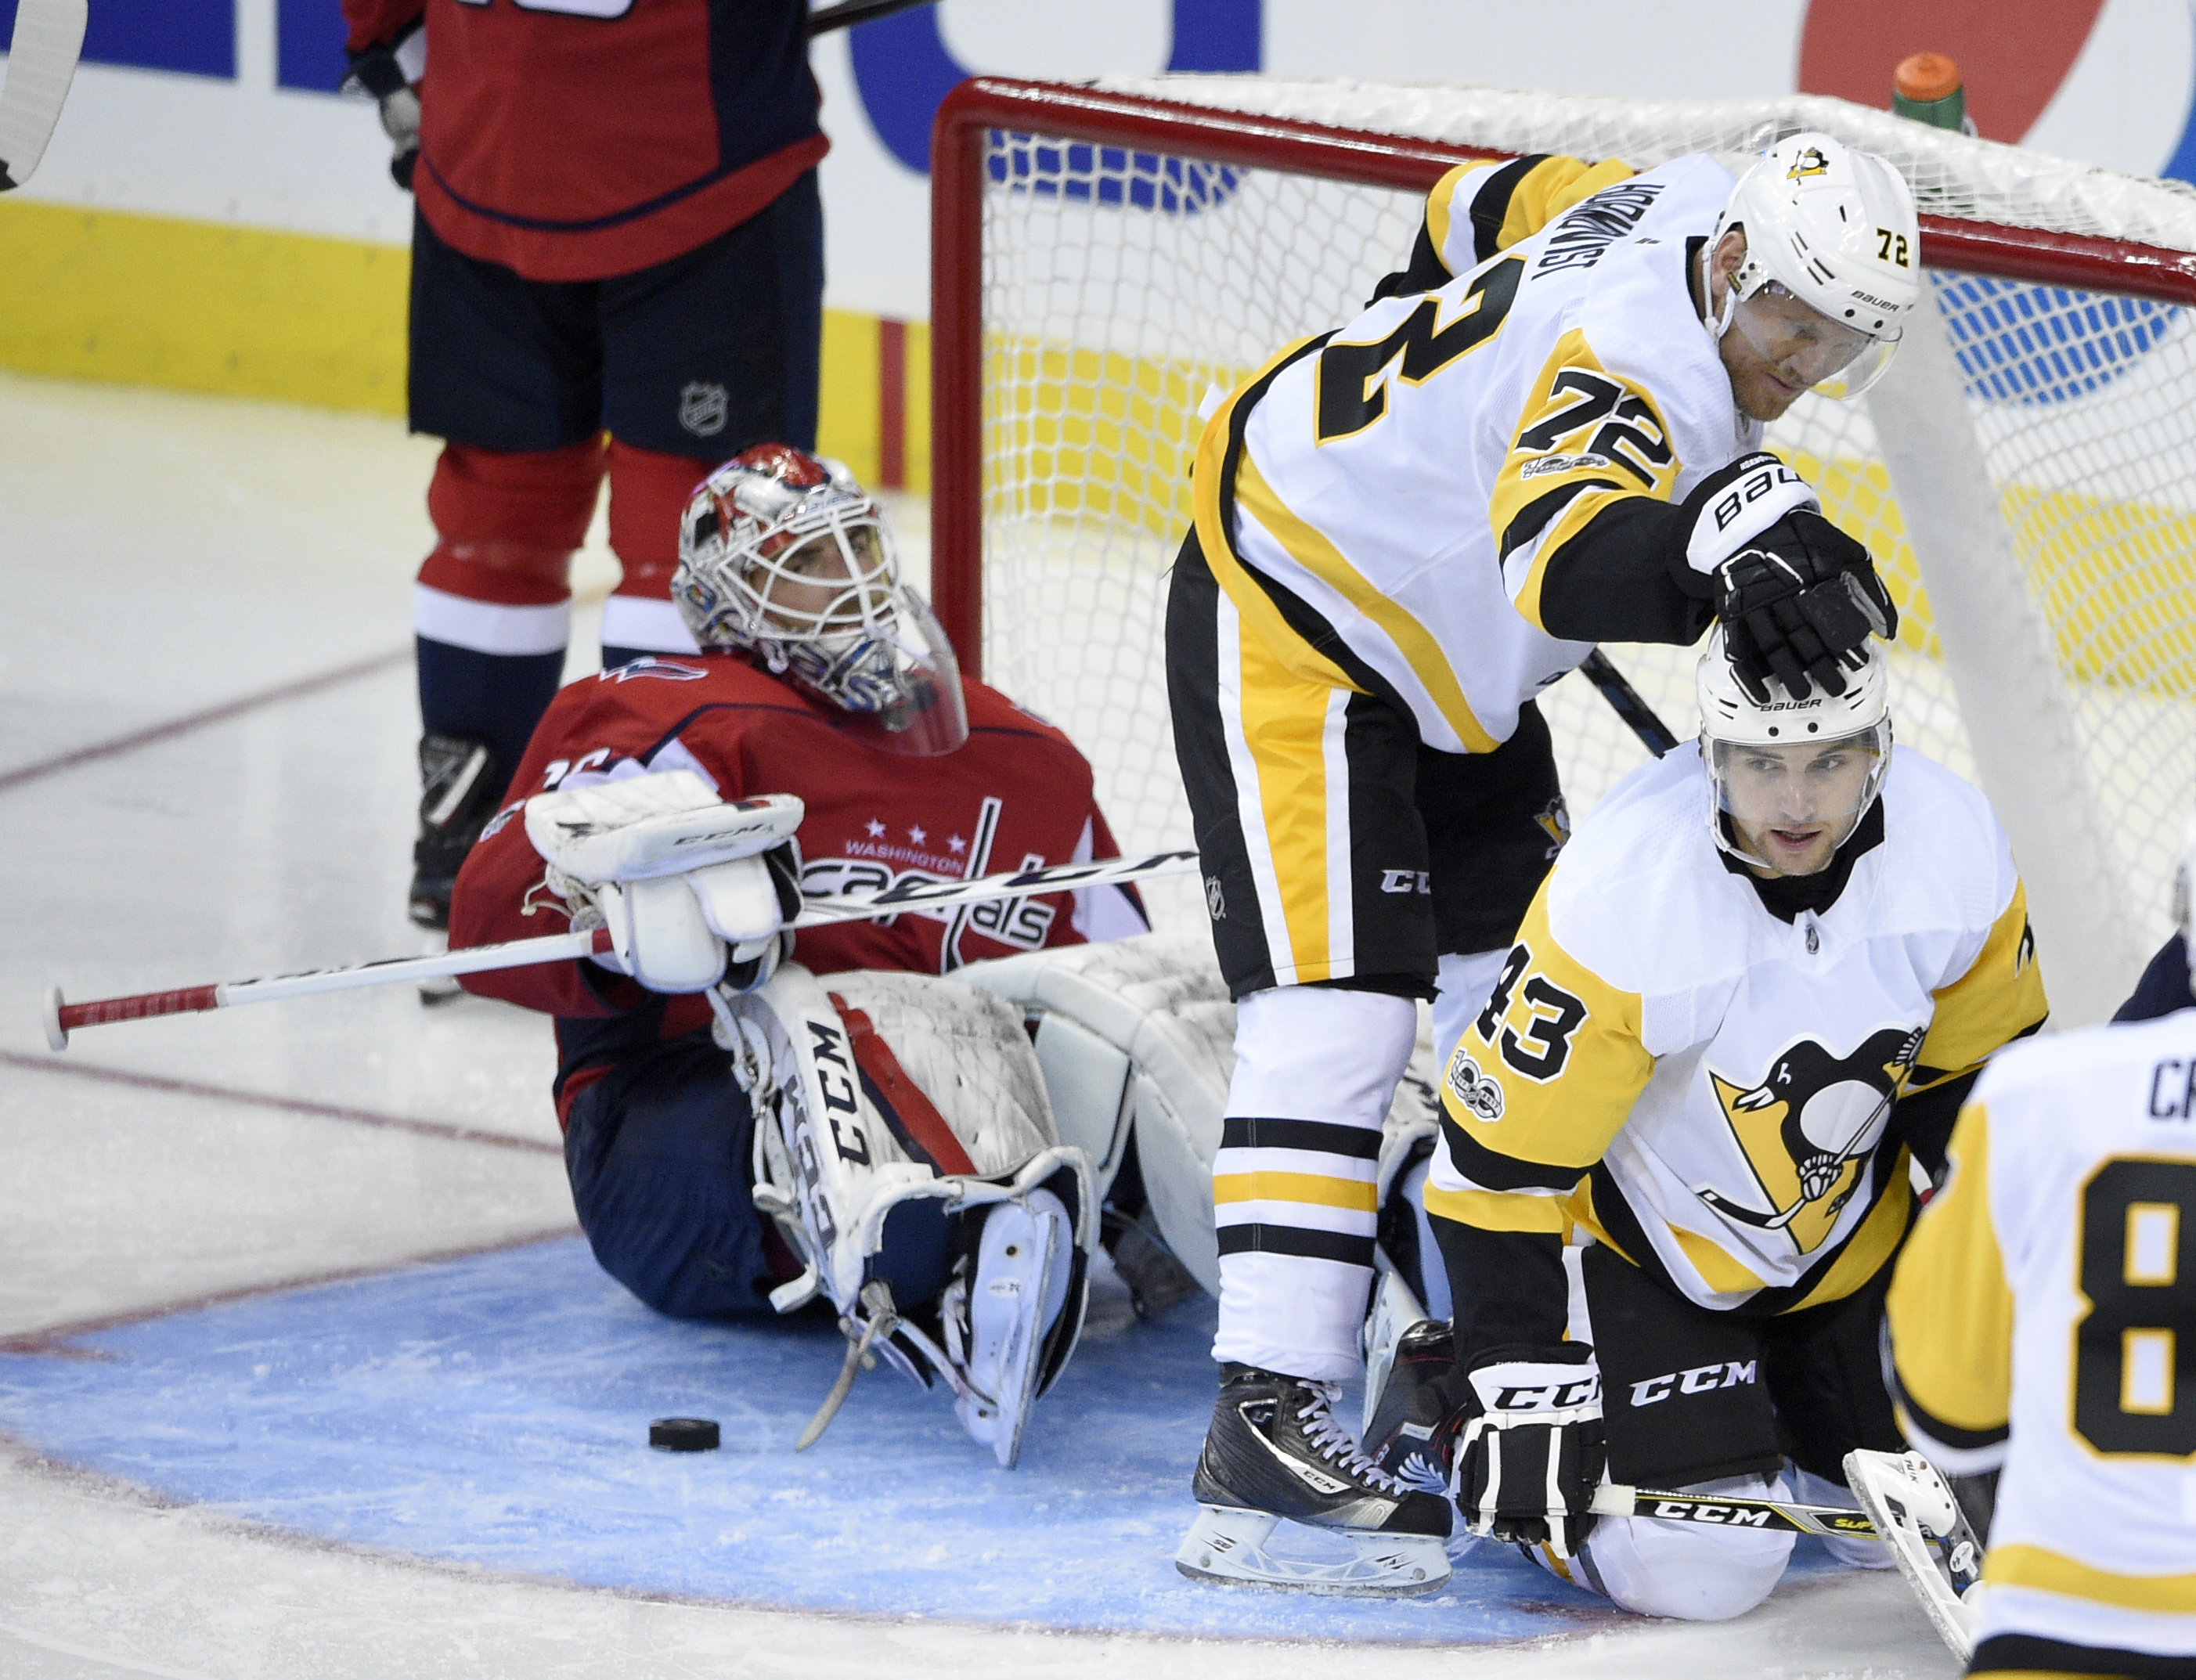 1c917f2eab3 Penguins top penalty-plagued Capitals in playoff rematch - Washington Times